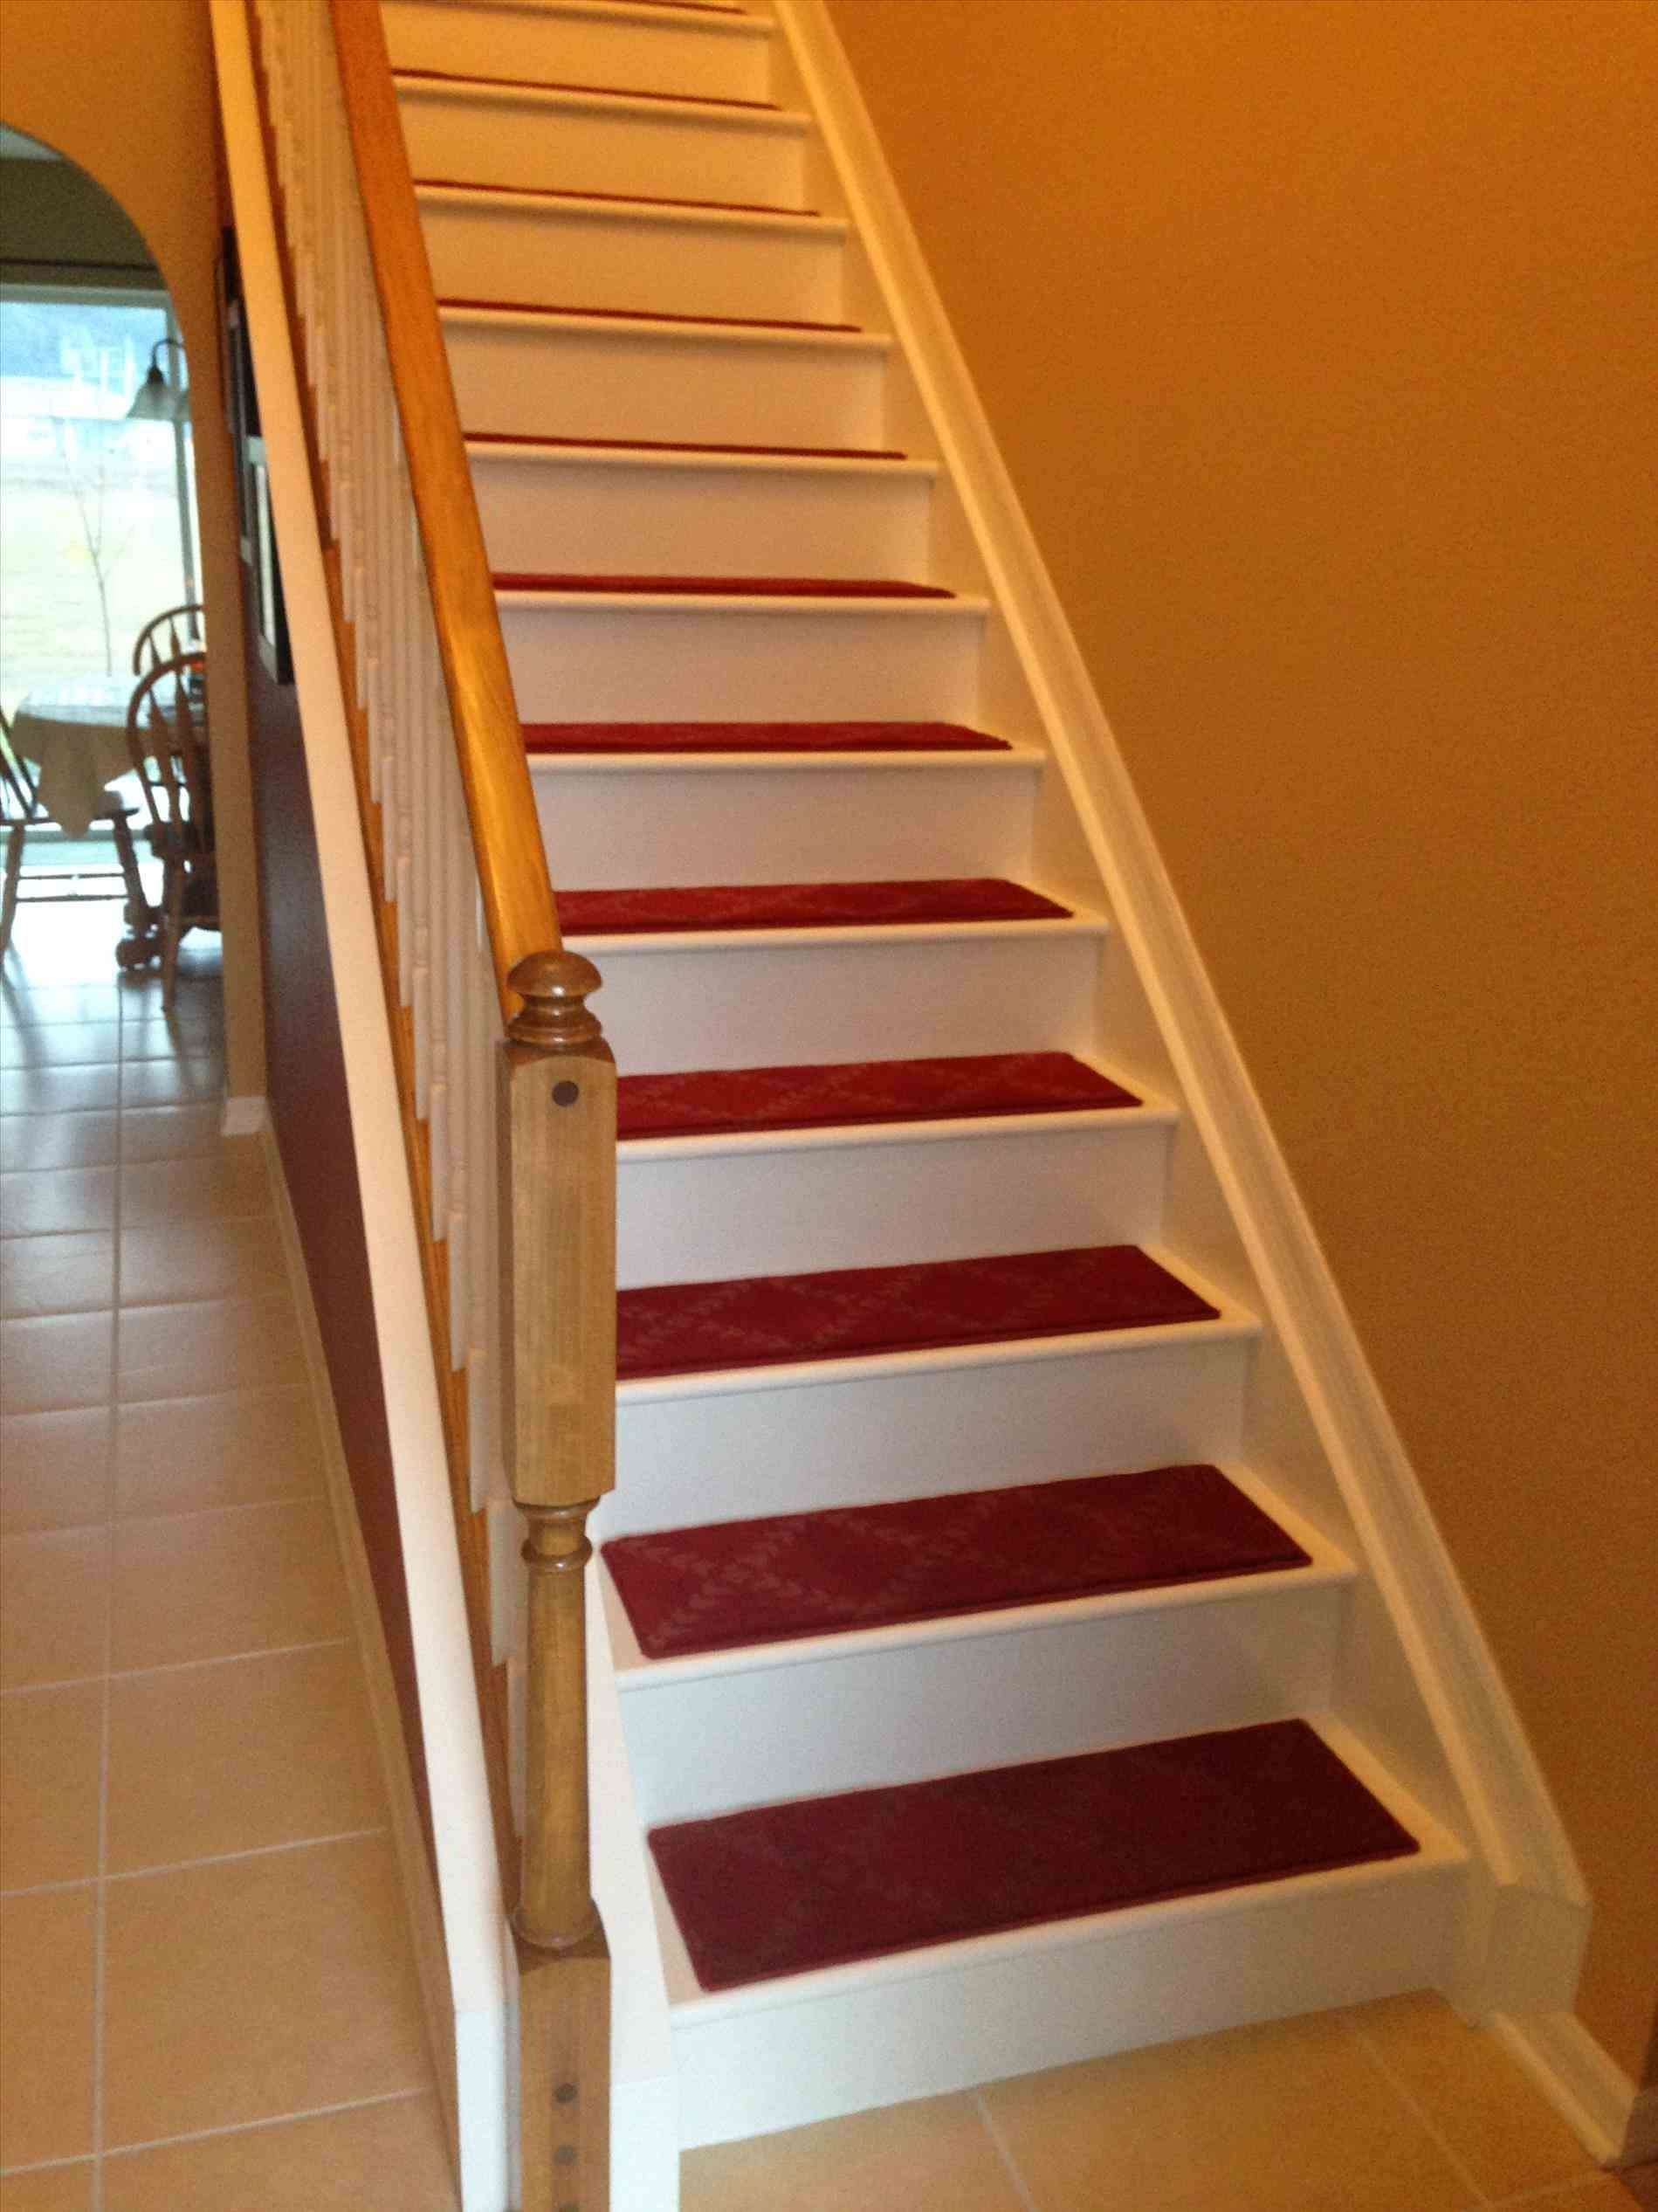 10 Gorgeous Ideas For Stairs Instead Of Carpet ideas for stairs instead of carpet inspect home 2021